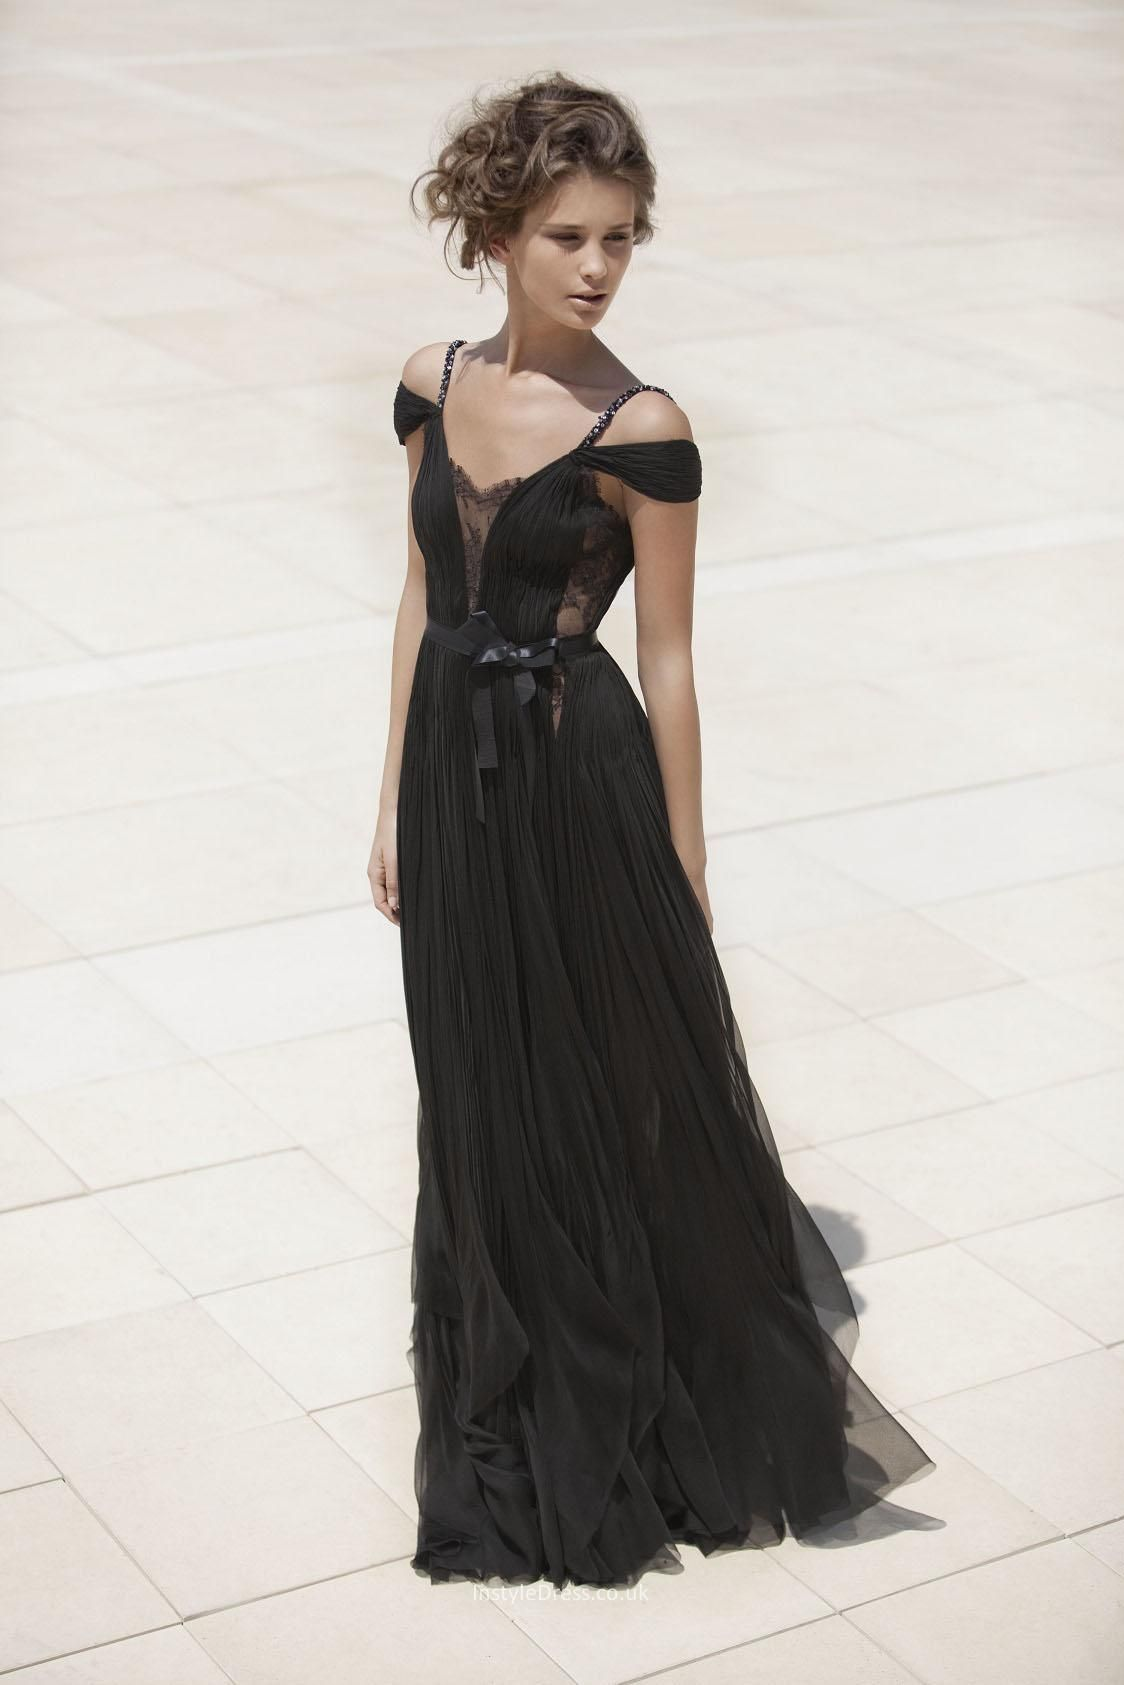 Black boho gown | STYLE | Pinterest | Boho gown, Boho and Gowns